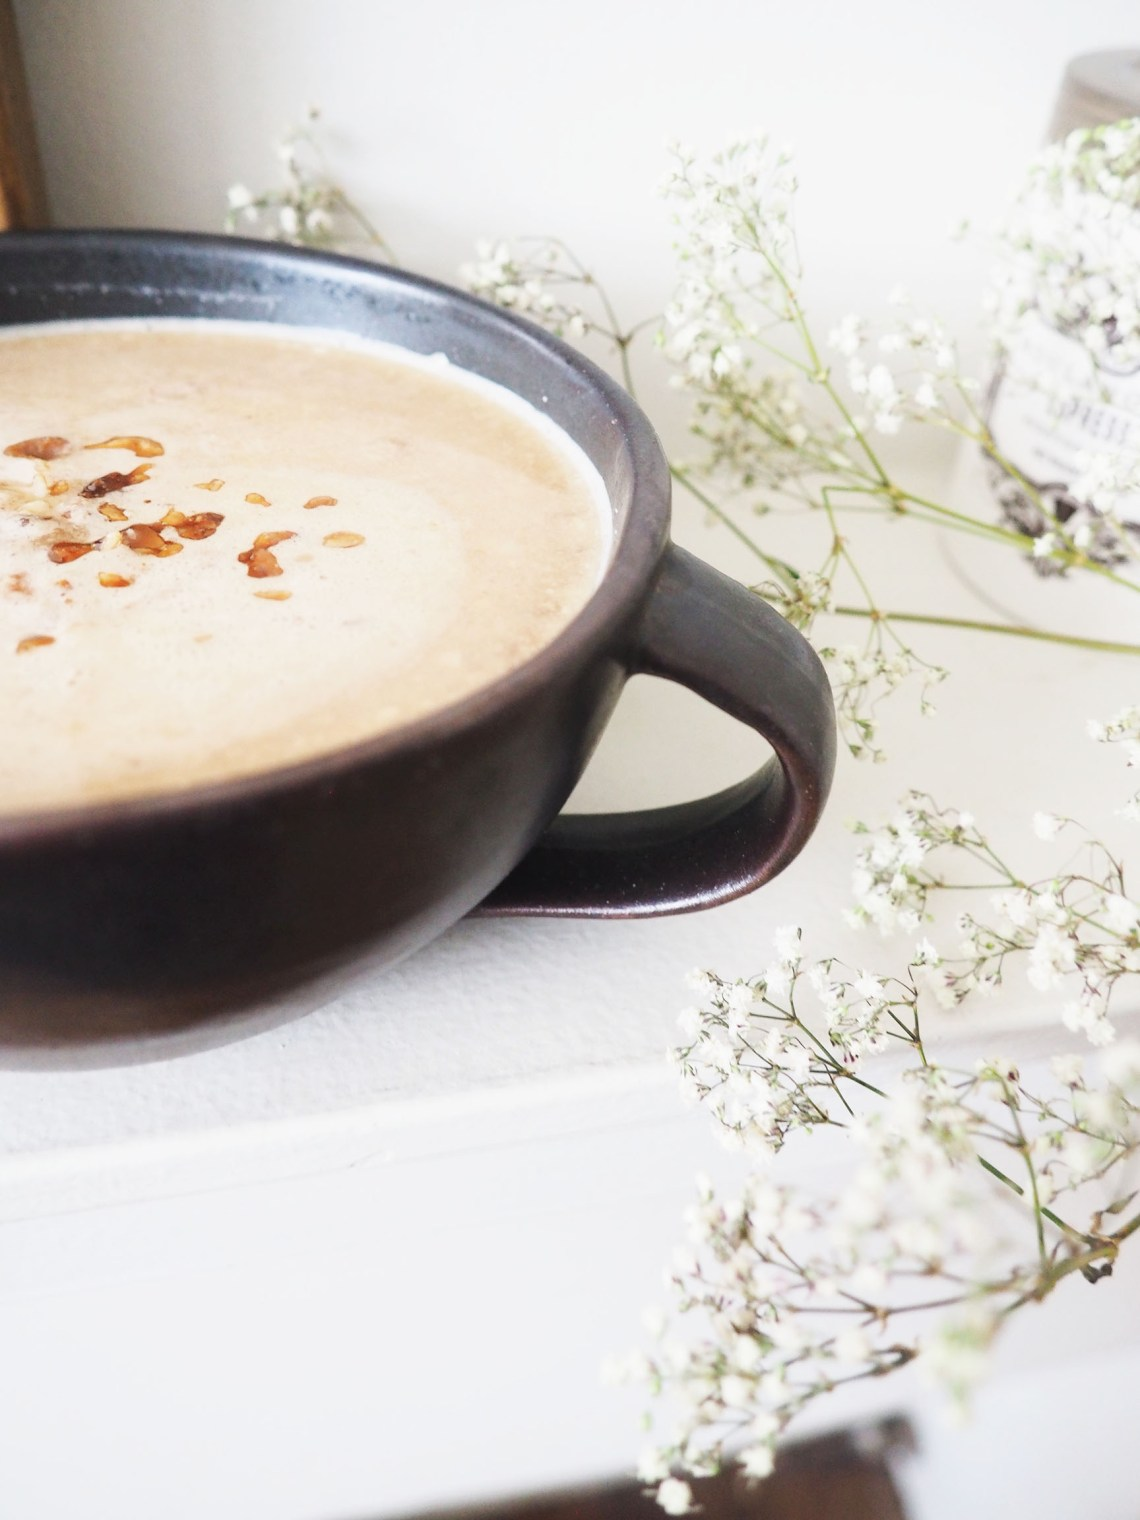 You'll Go Nuts For This Warm & Toasted Macadamia Nut Latte